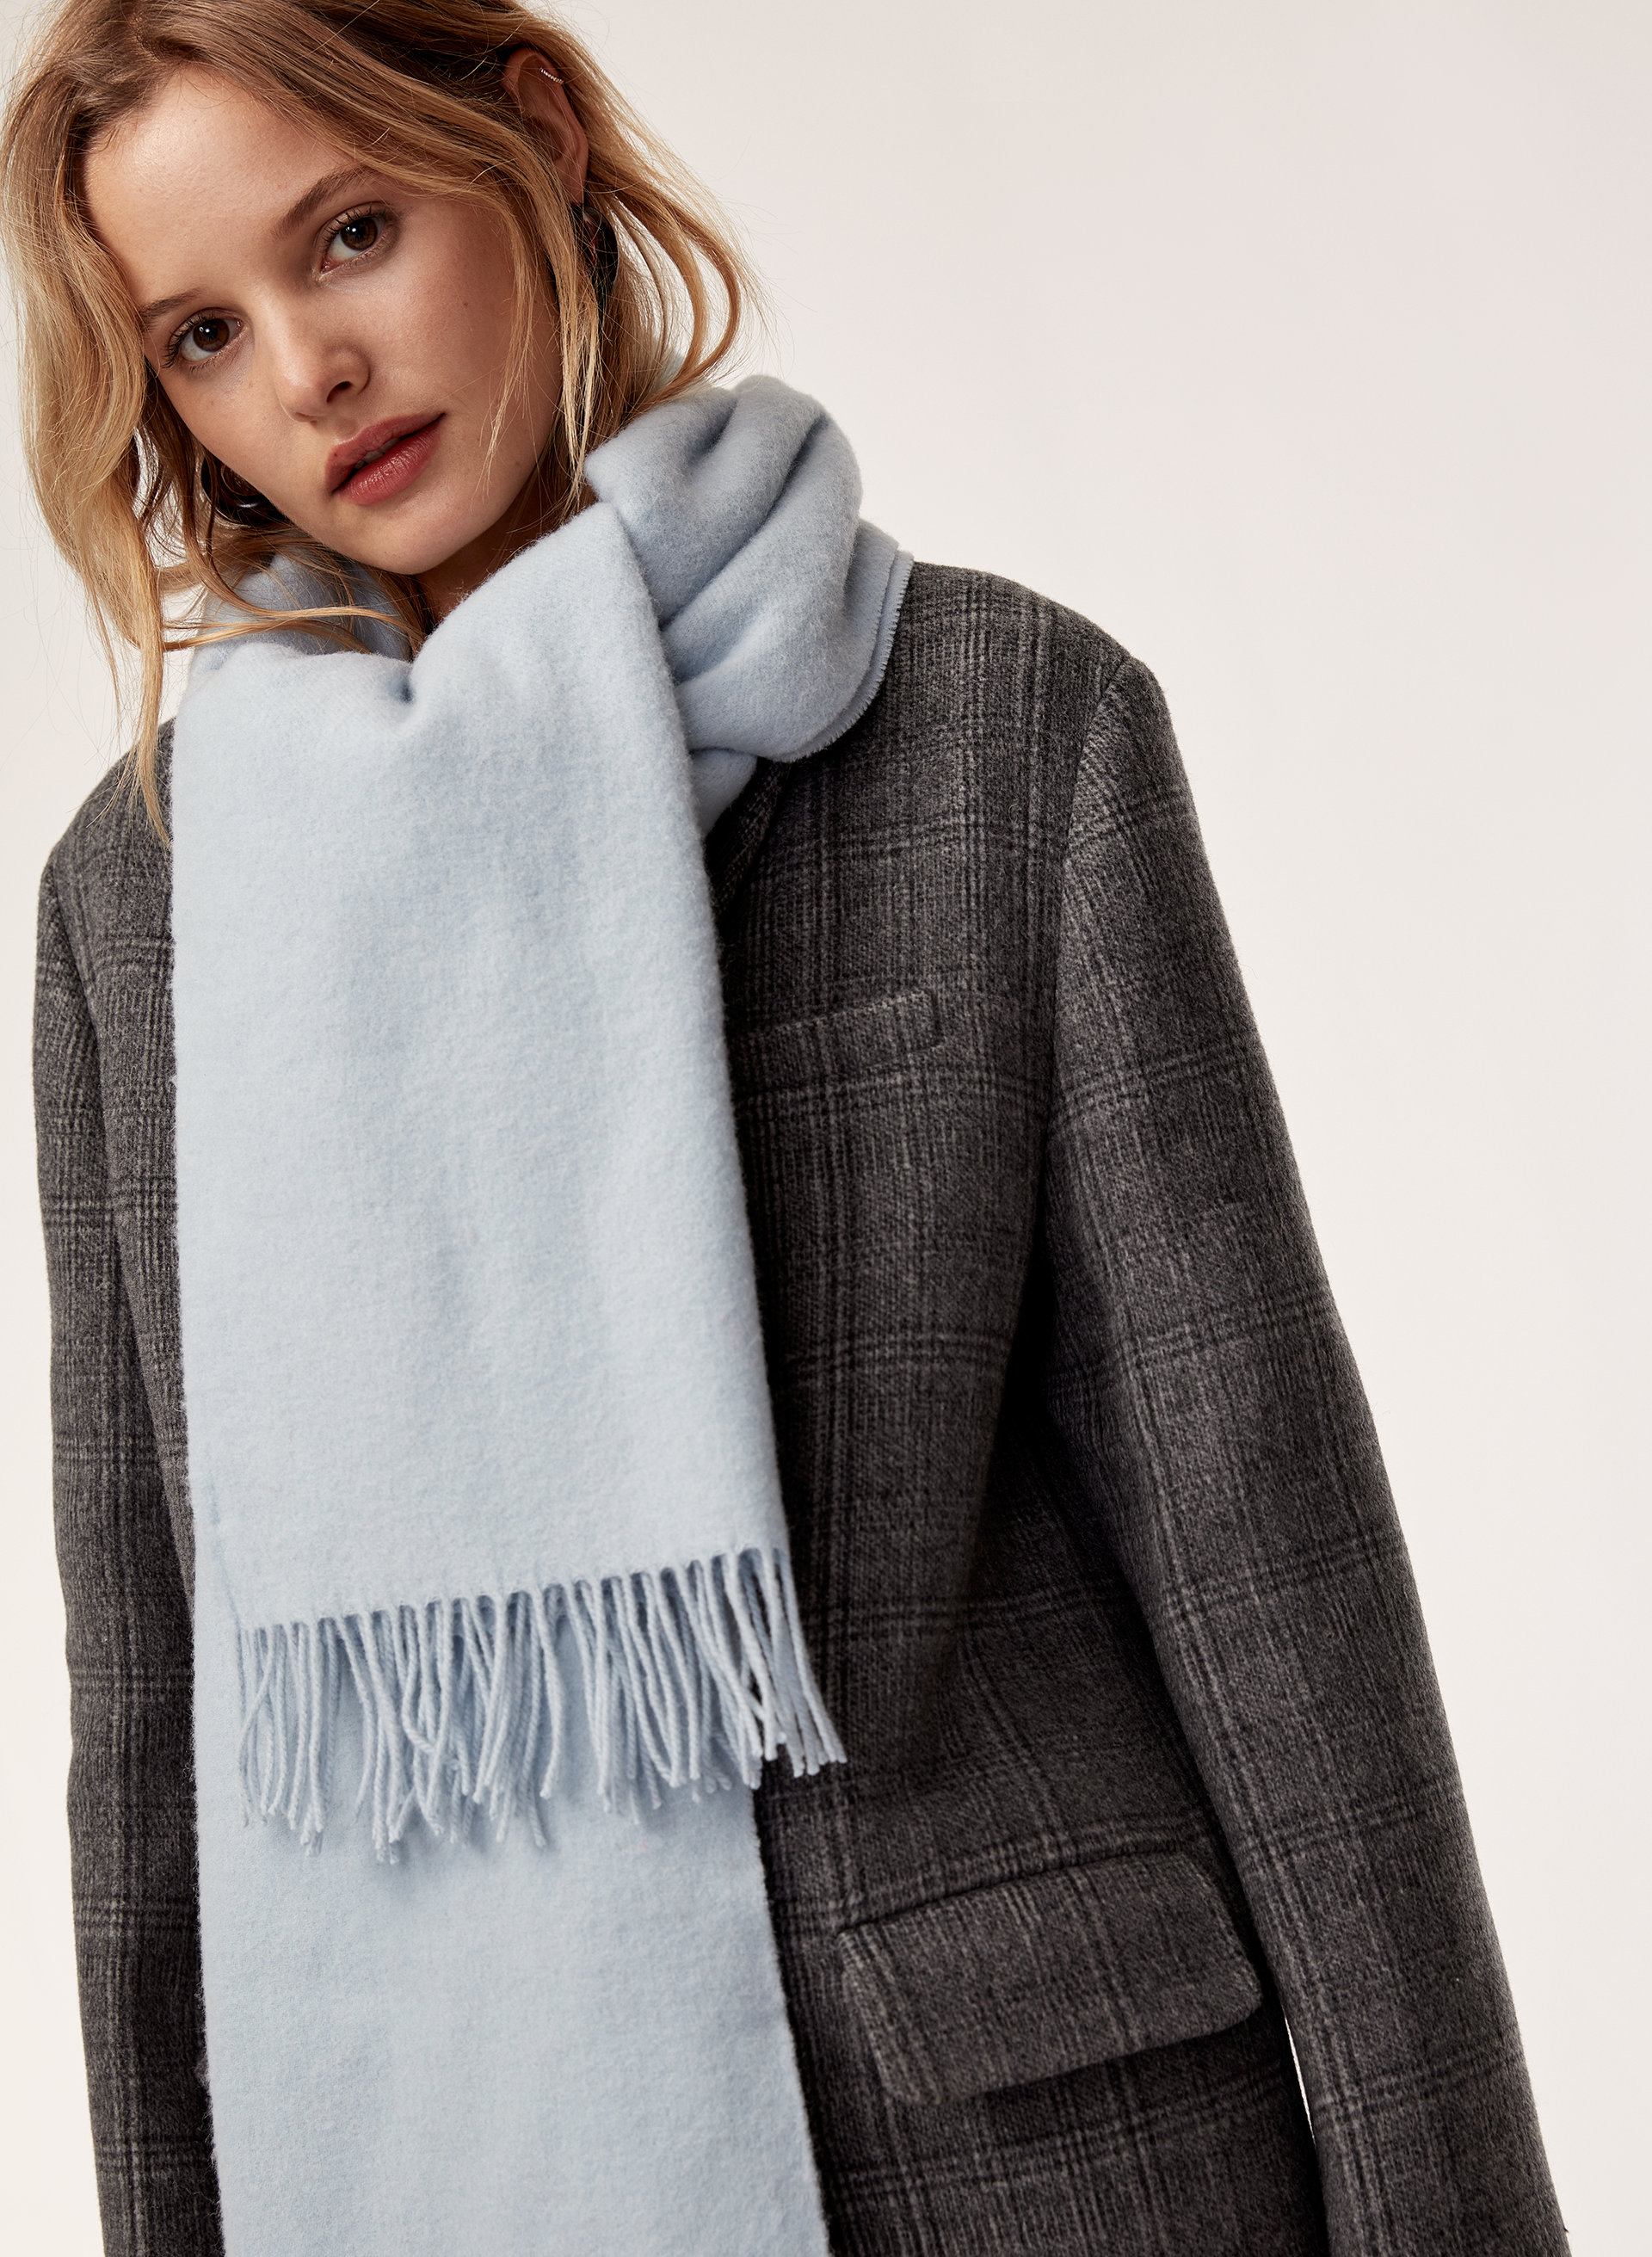 Wilfred + The Classic Wool Scarf - refinery29.com